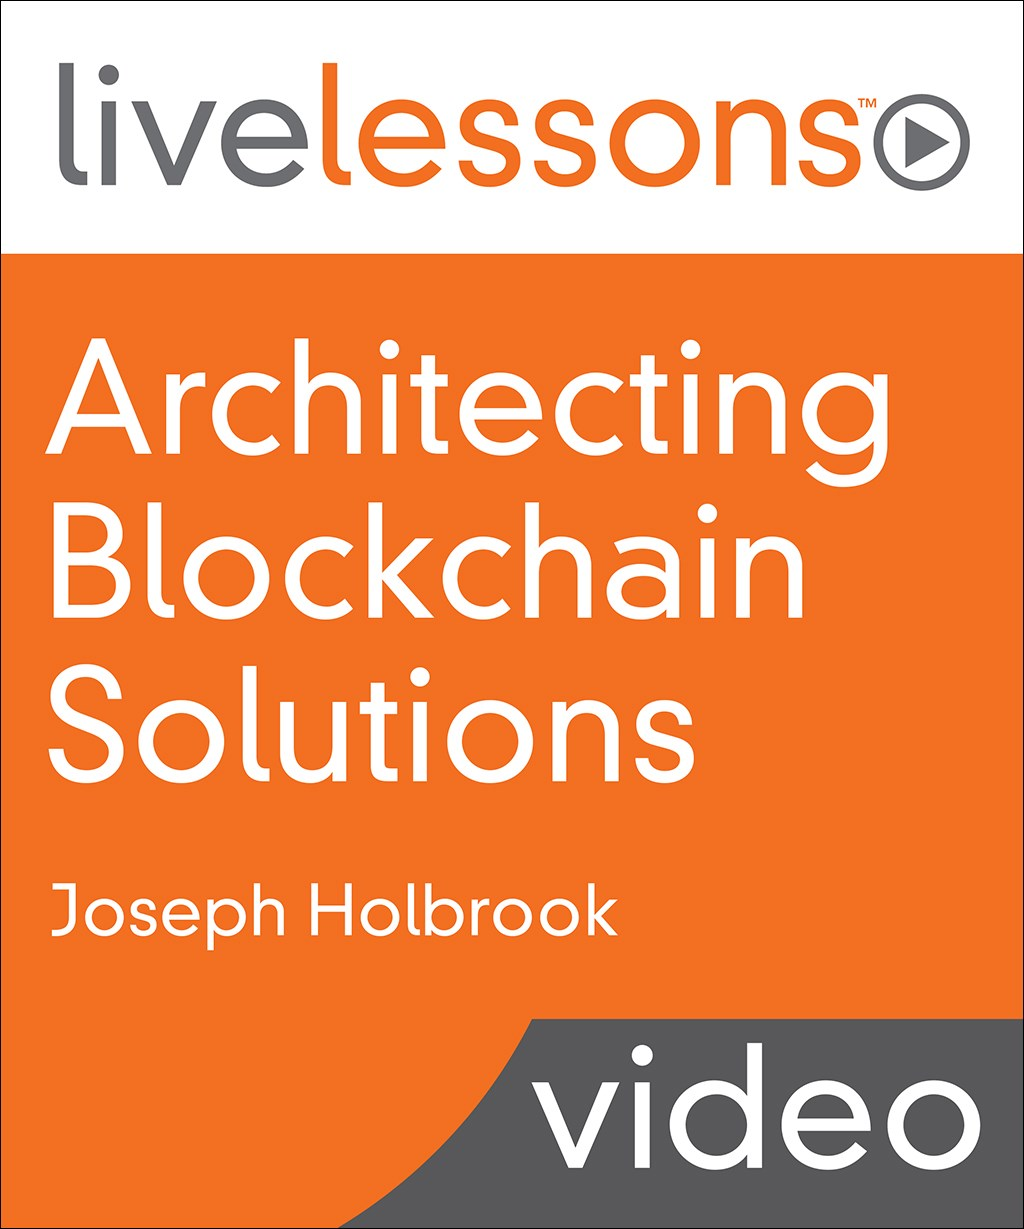 Architecting Blockchain Solutions LiveLessons